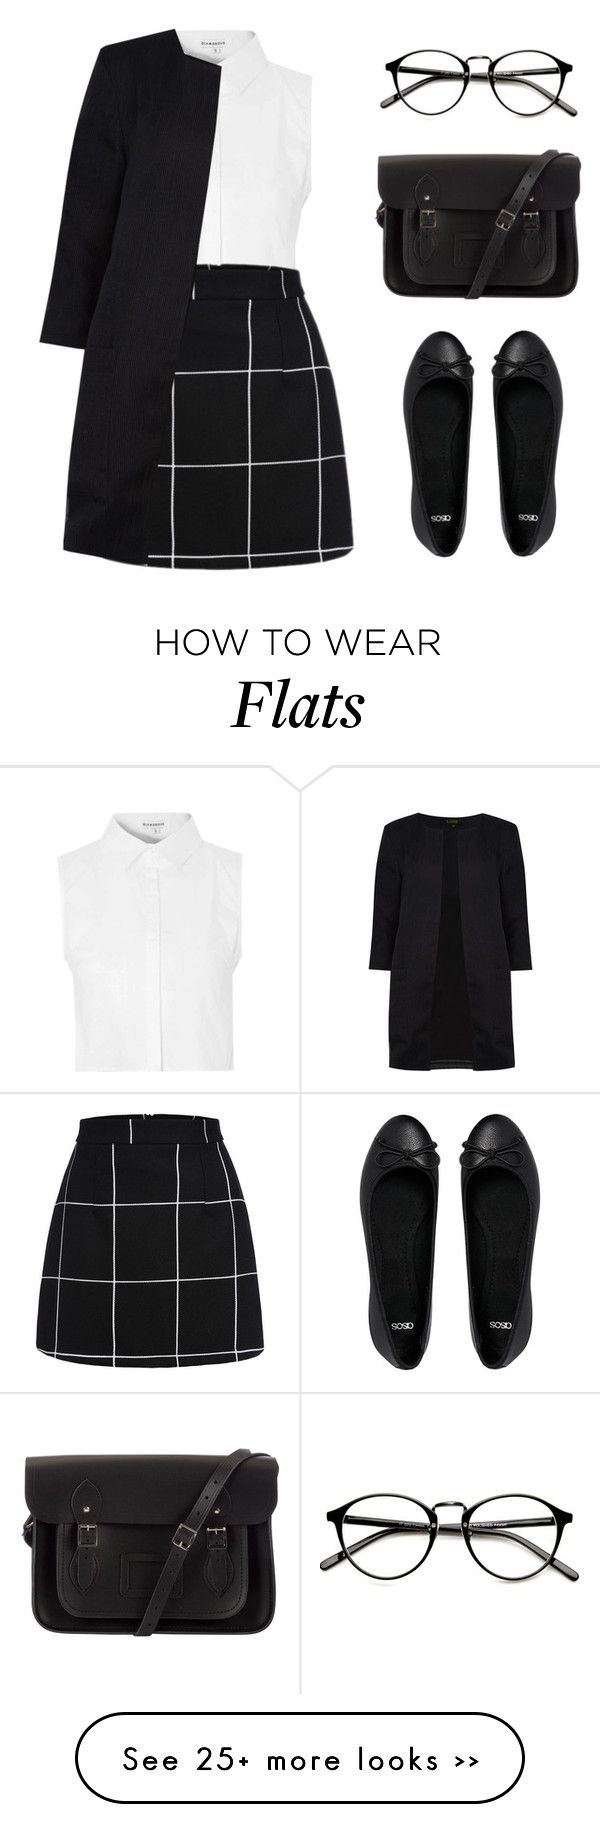 """Lily"" by felytery on Polyvore featuring Glamorous, ASOS, The Cambridge Satchel Company and Dorothy Perkins"